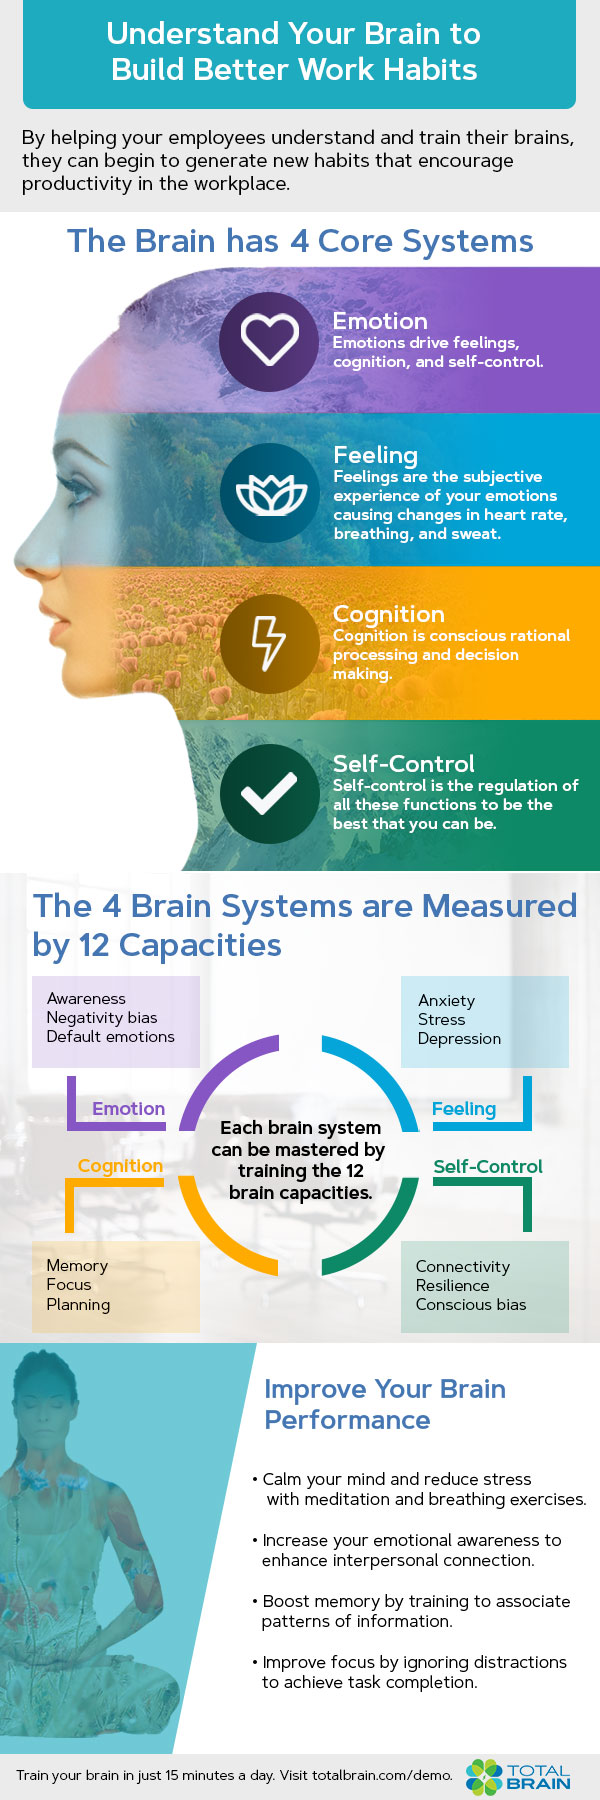 4-core-brain-systems